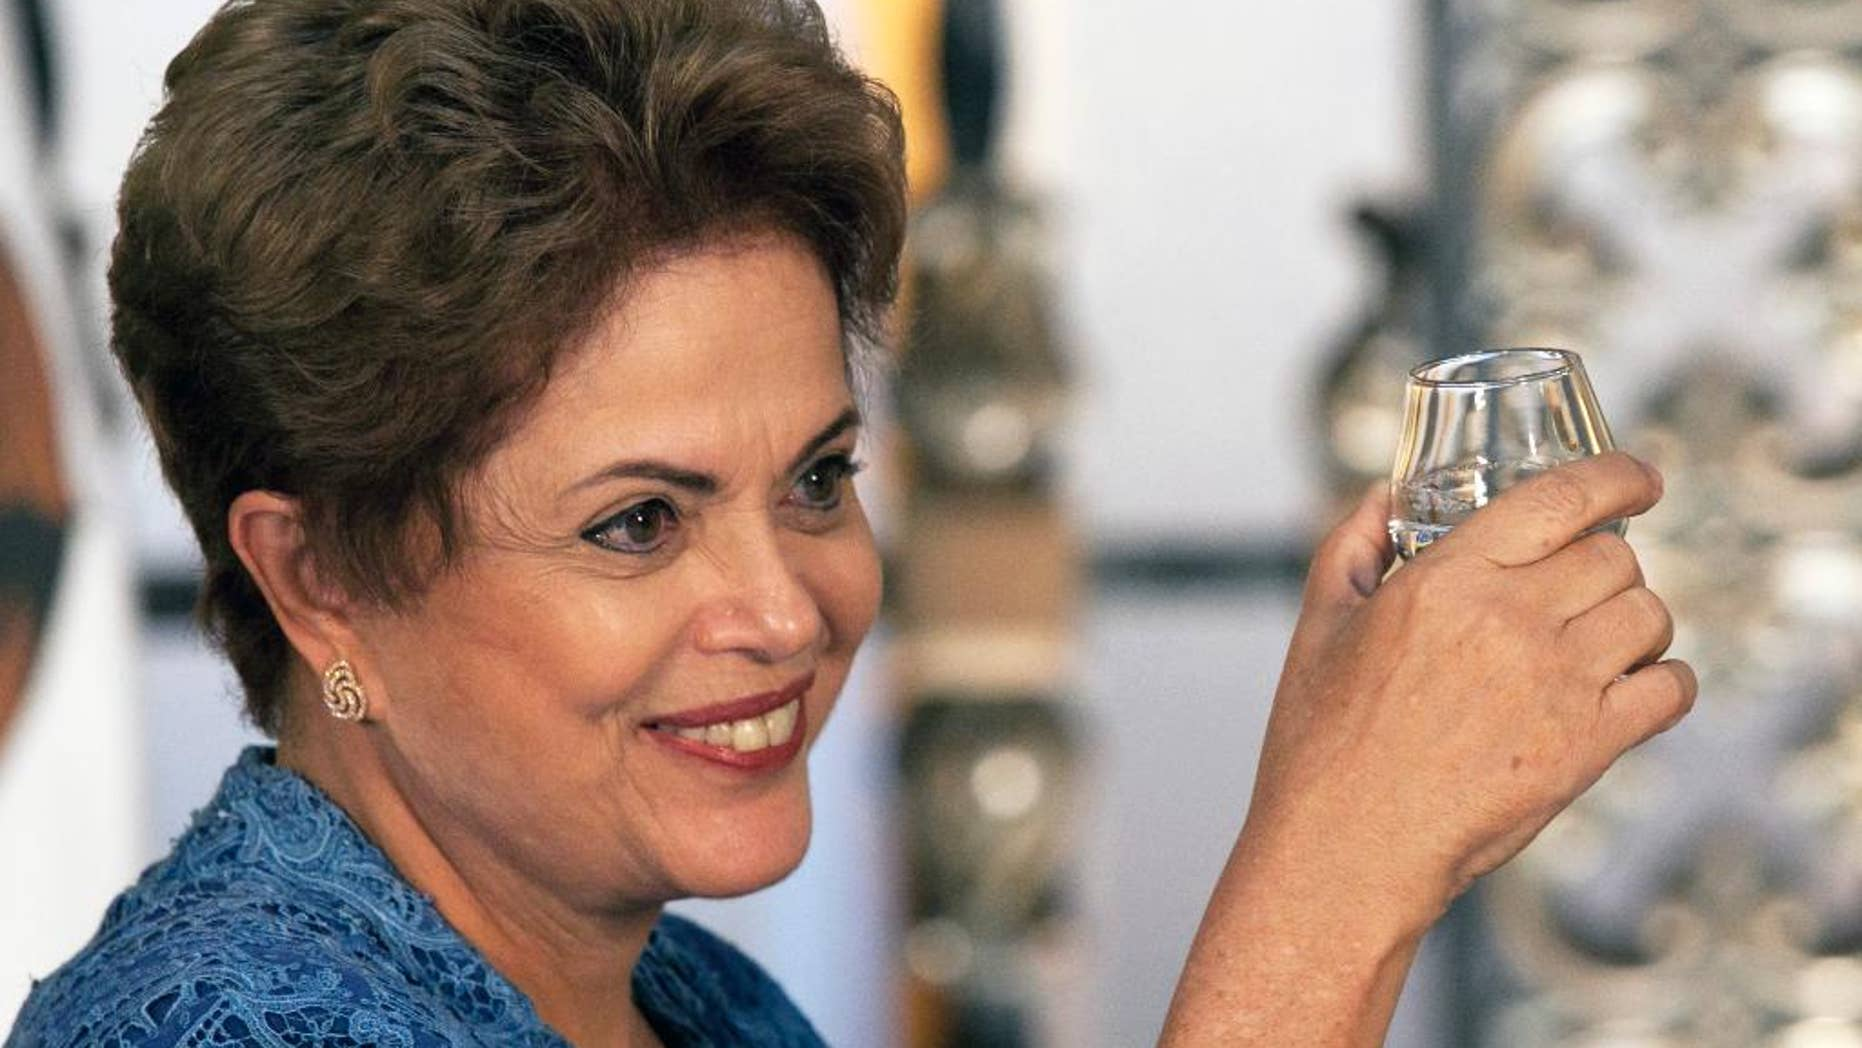 FILE - In this May 26, 2015, file photo, Brazil's President Dilma Rousseff raises her cup during a toast with Mexico's President Enrique Pena Nieto, not in photo, during an official ceremony at the National Palace in Mexico City. Rousseff's popularity ratings have dropped to levels not seen since the government of disgraced former president Fernando Collor de Mello in 1992, according to a poll published Sunday, June 21. (AP Photo/Marco Ugarte, File)